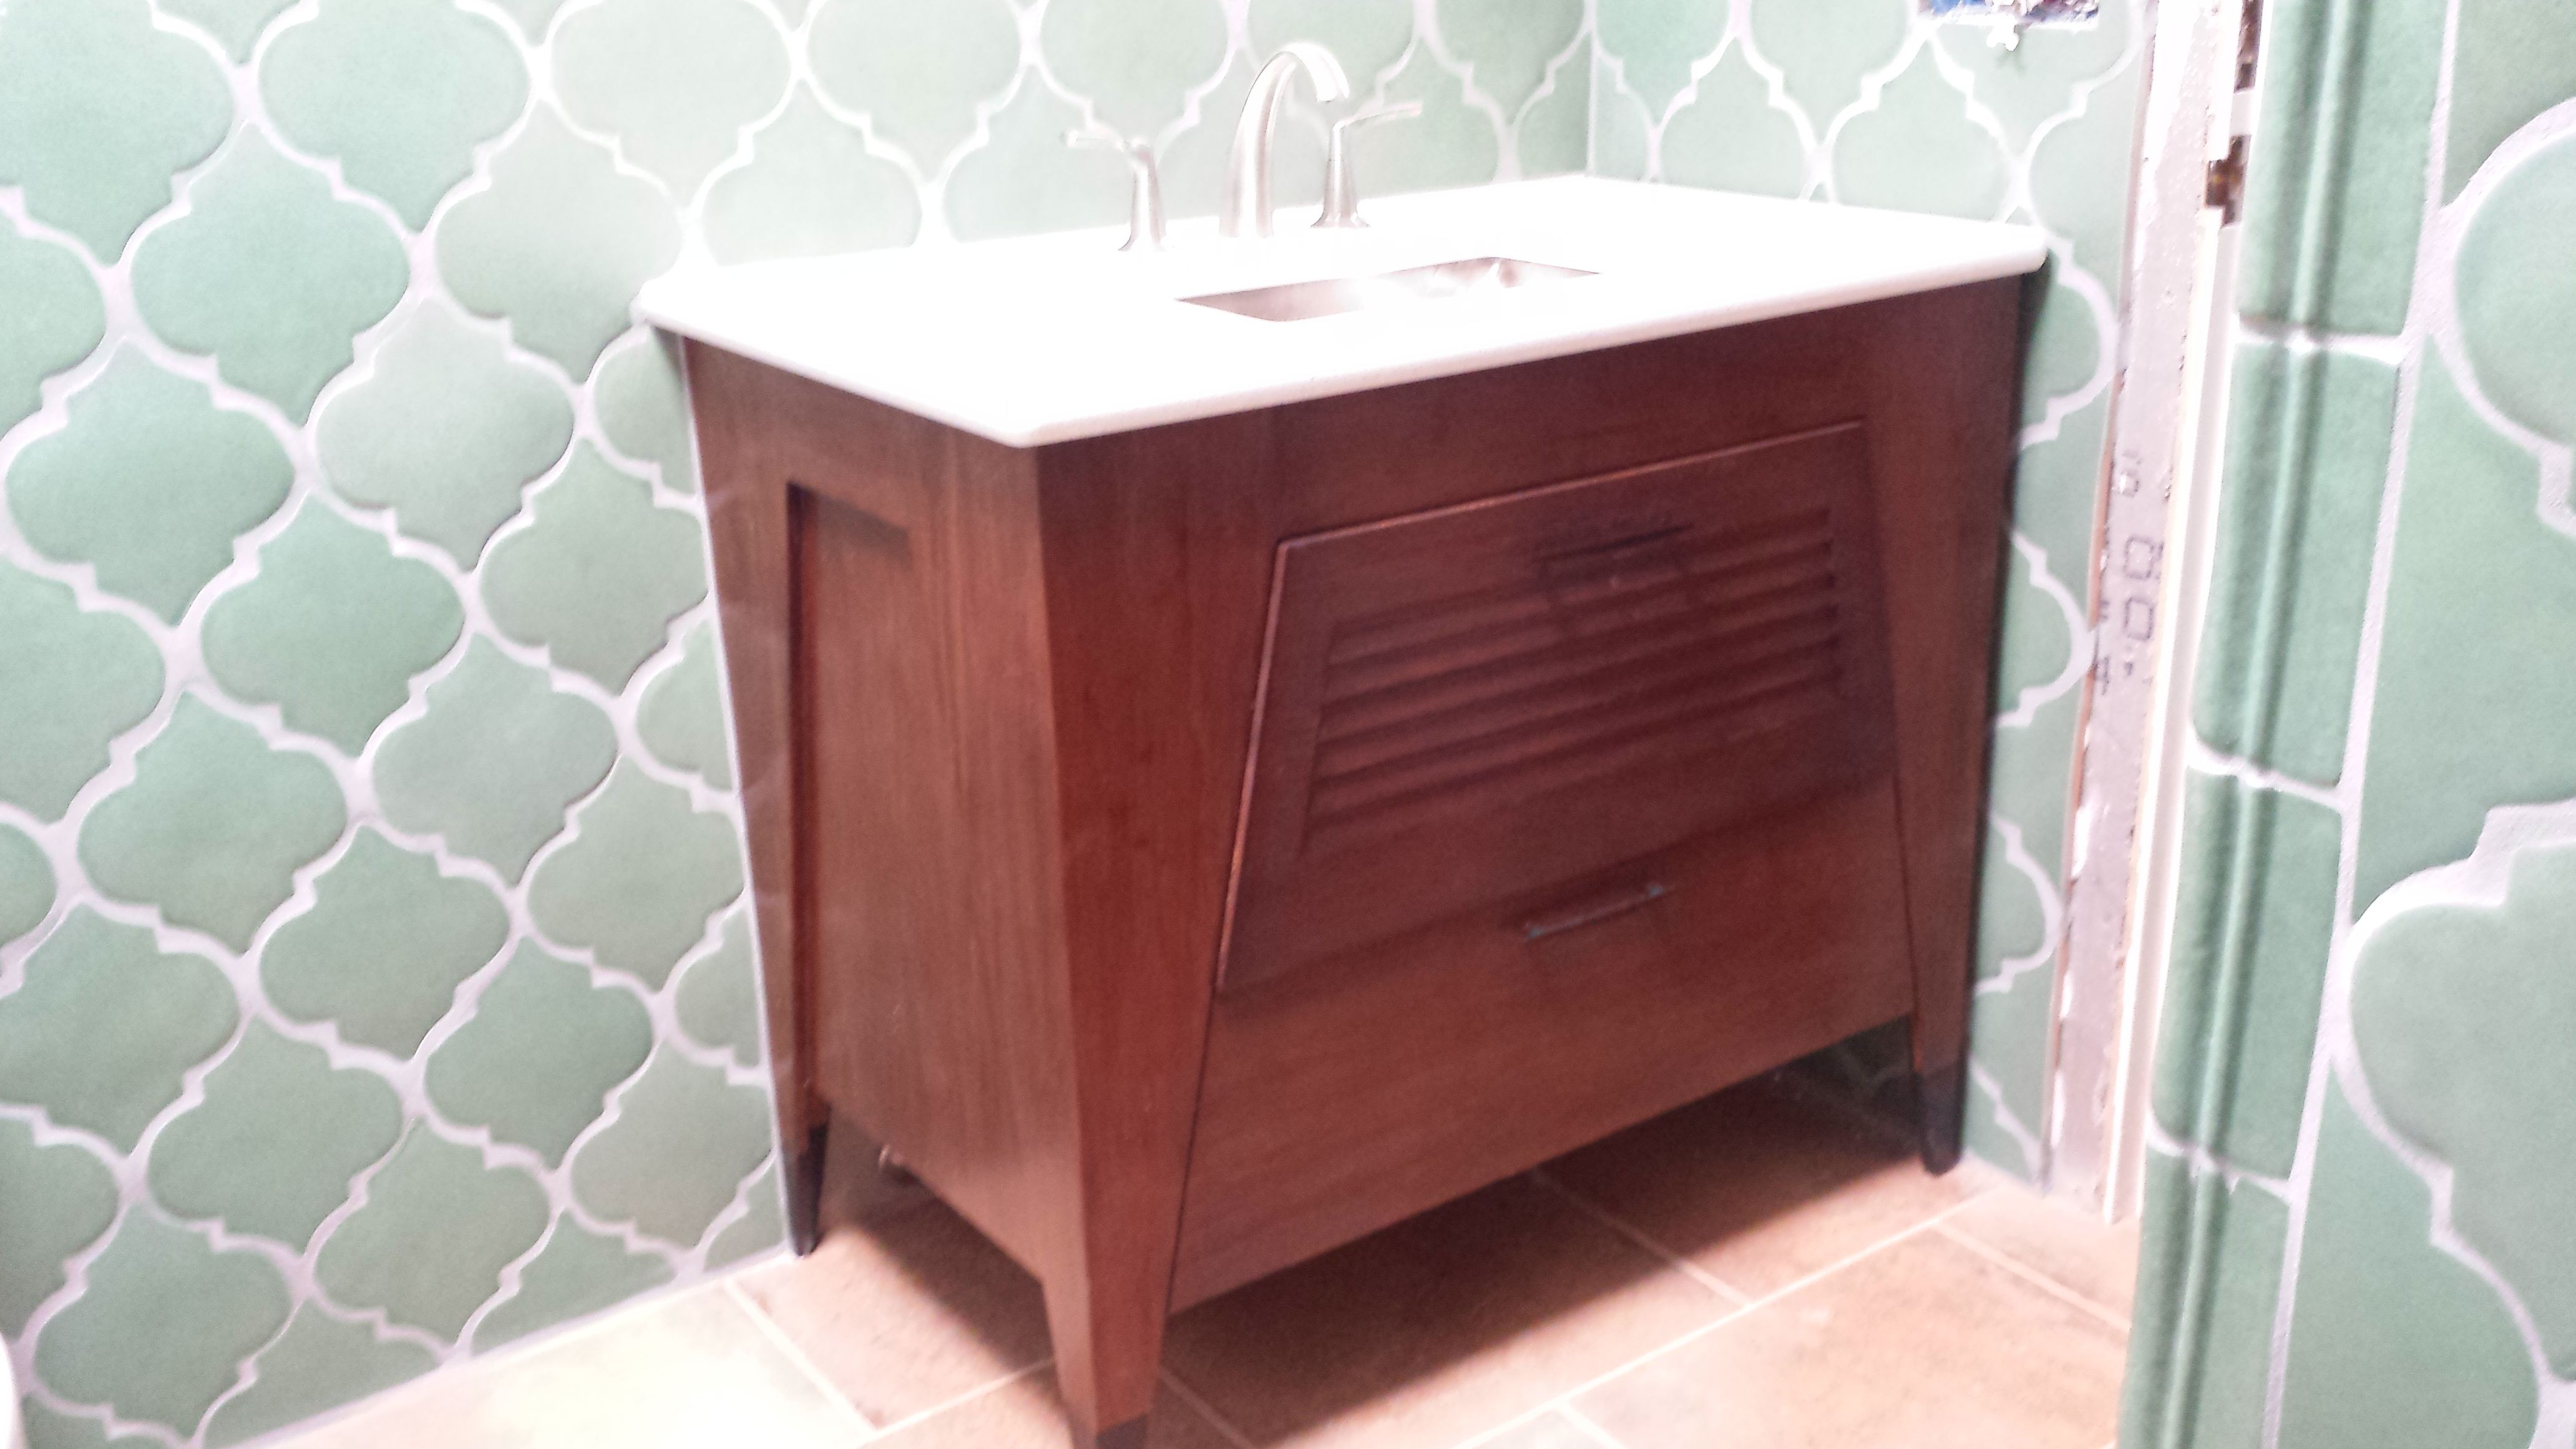 Native Trails bathroom vanity is MADE IN AMERICA of sustainable